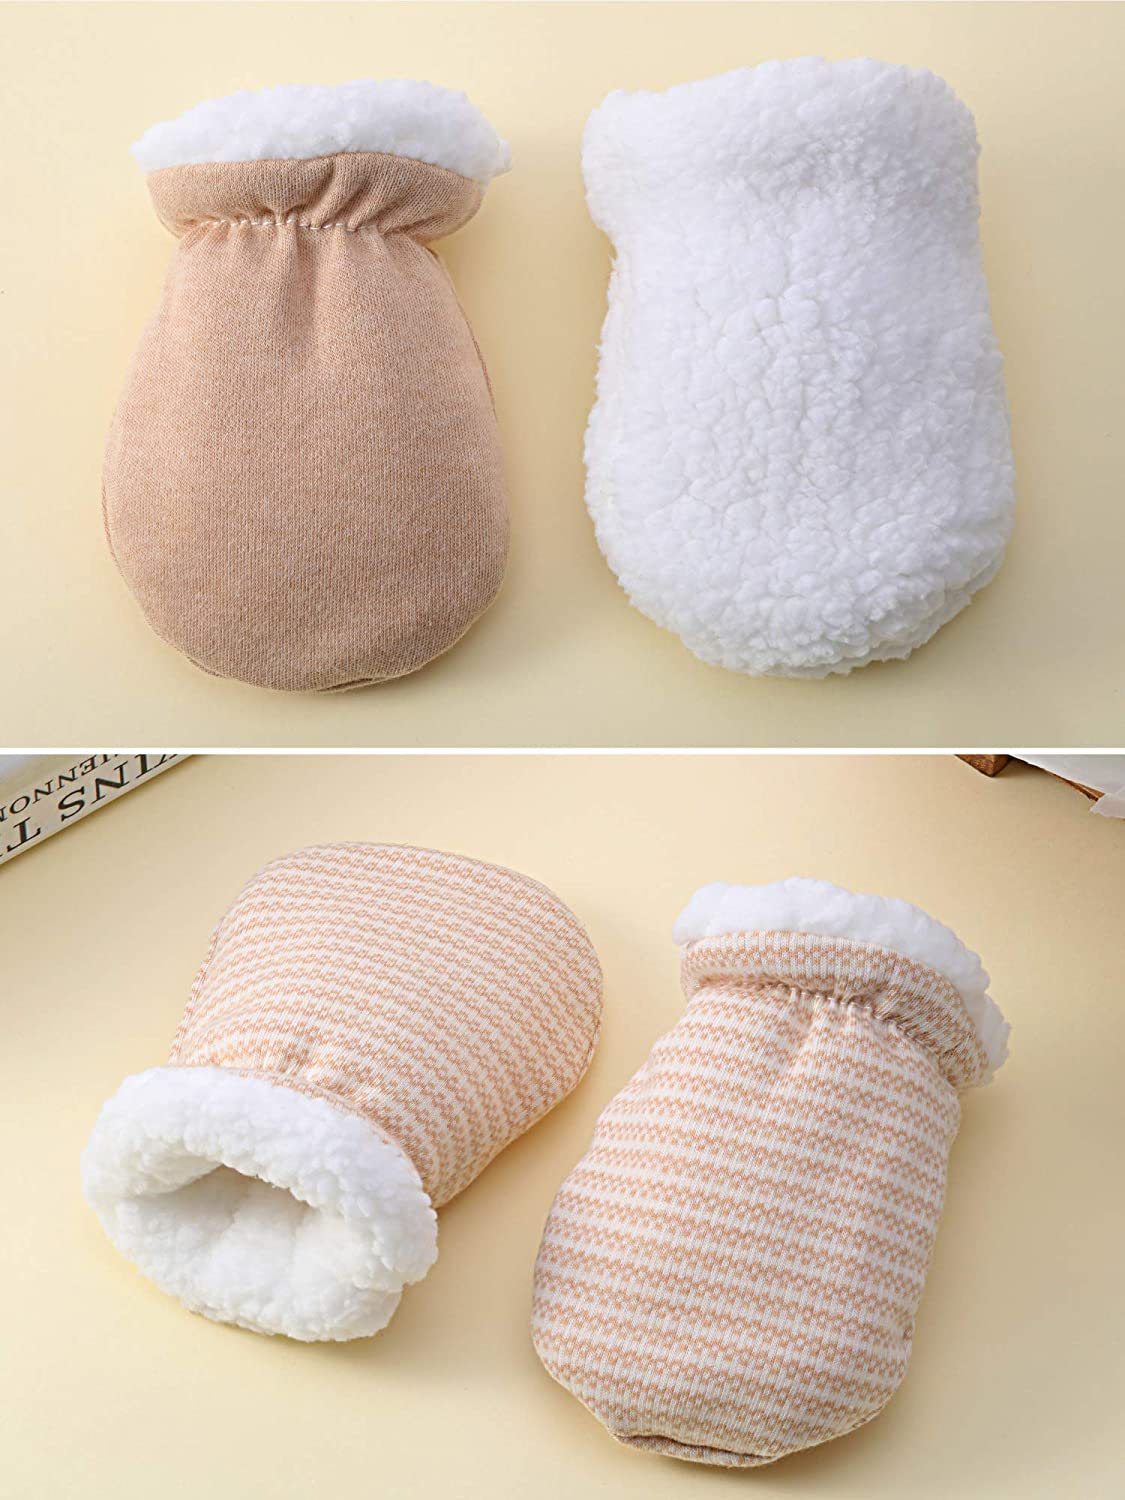 Blulu 3 Pairs Baby Mitten Gloves Warm Cotton Gloves Baby Boys Girls Winter Mittens Infant Newborn Wool Lined Mittens for 0-12 Months